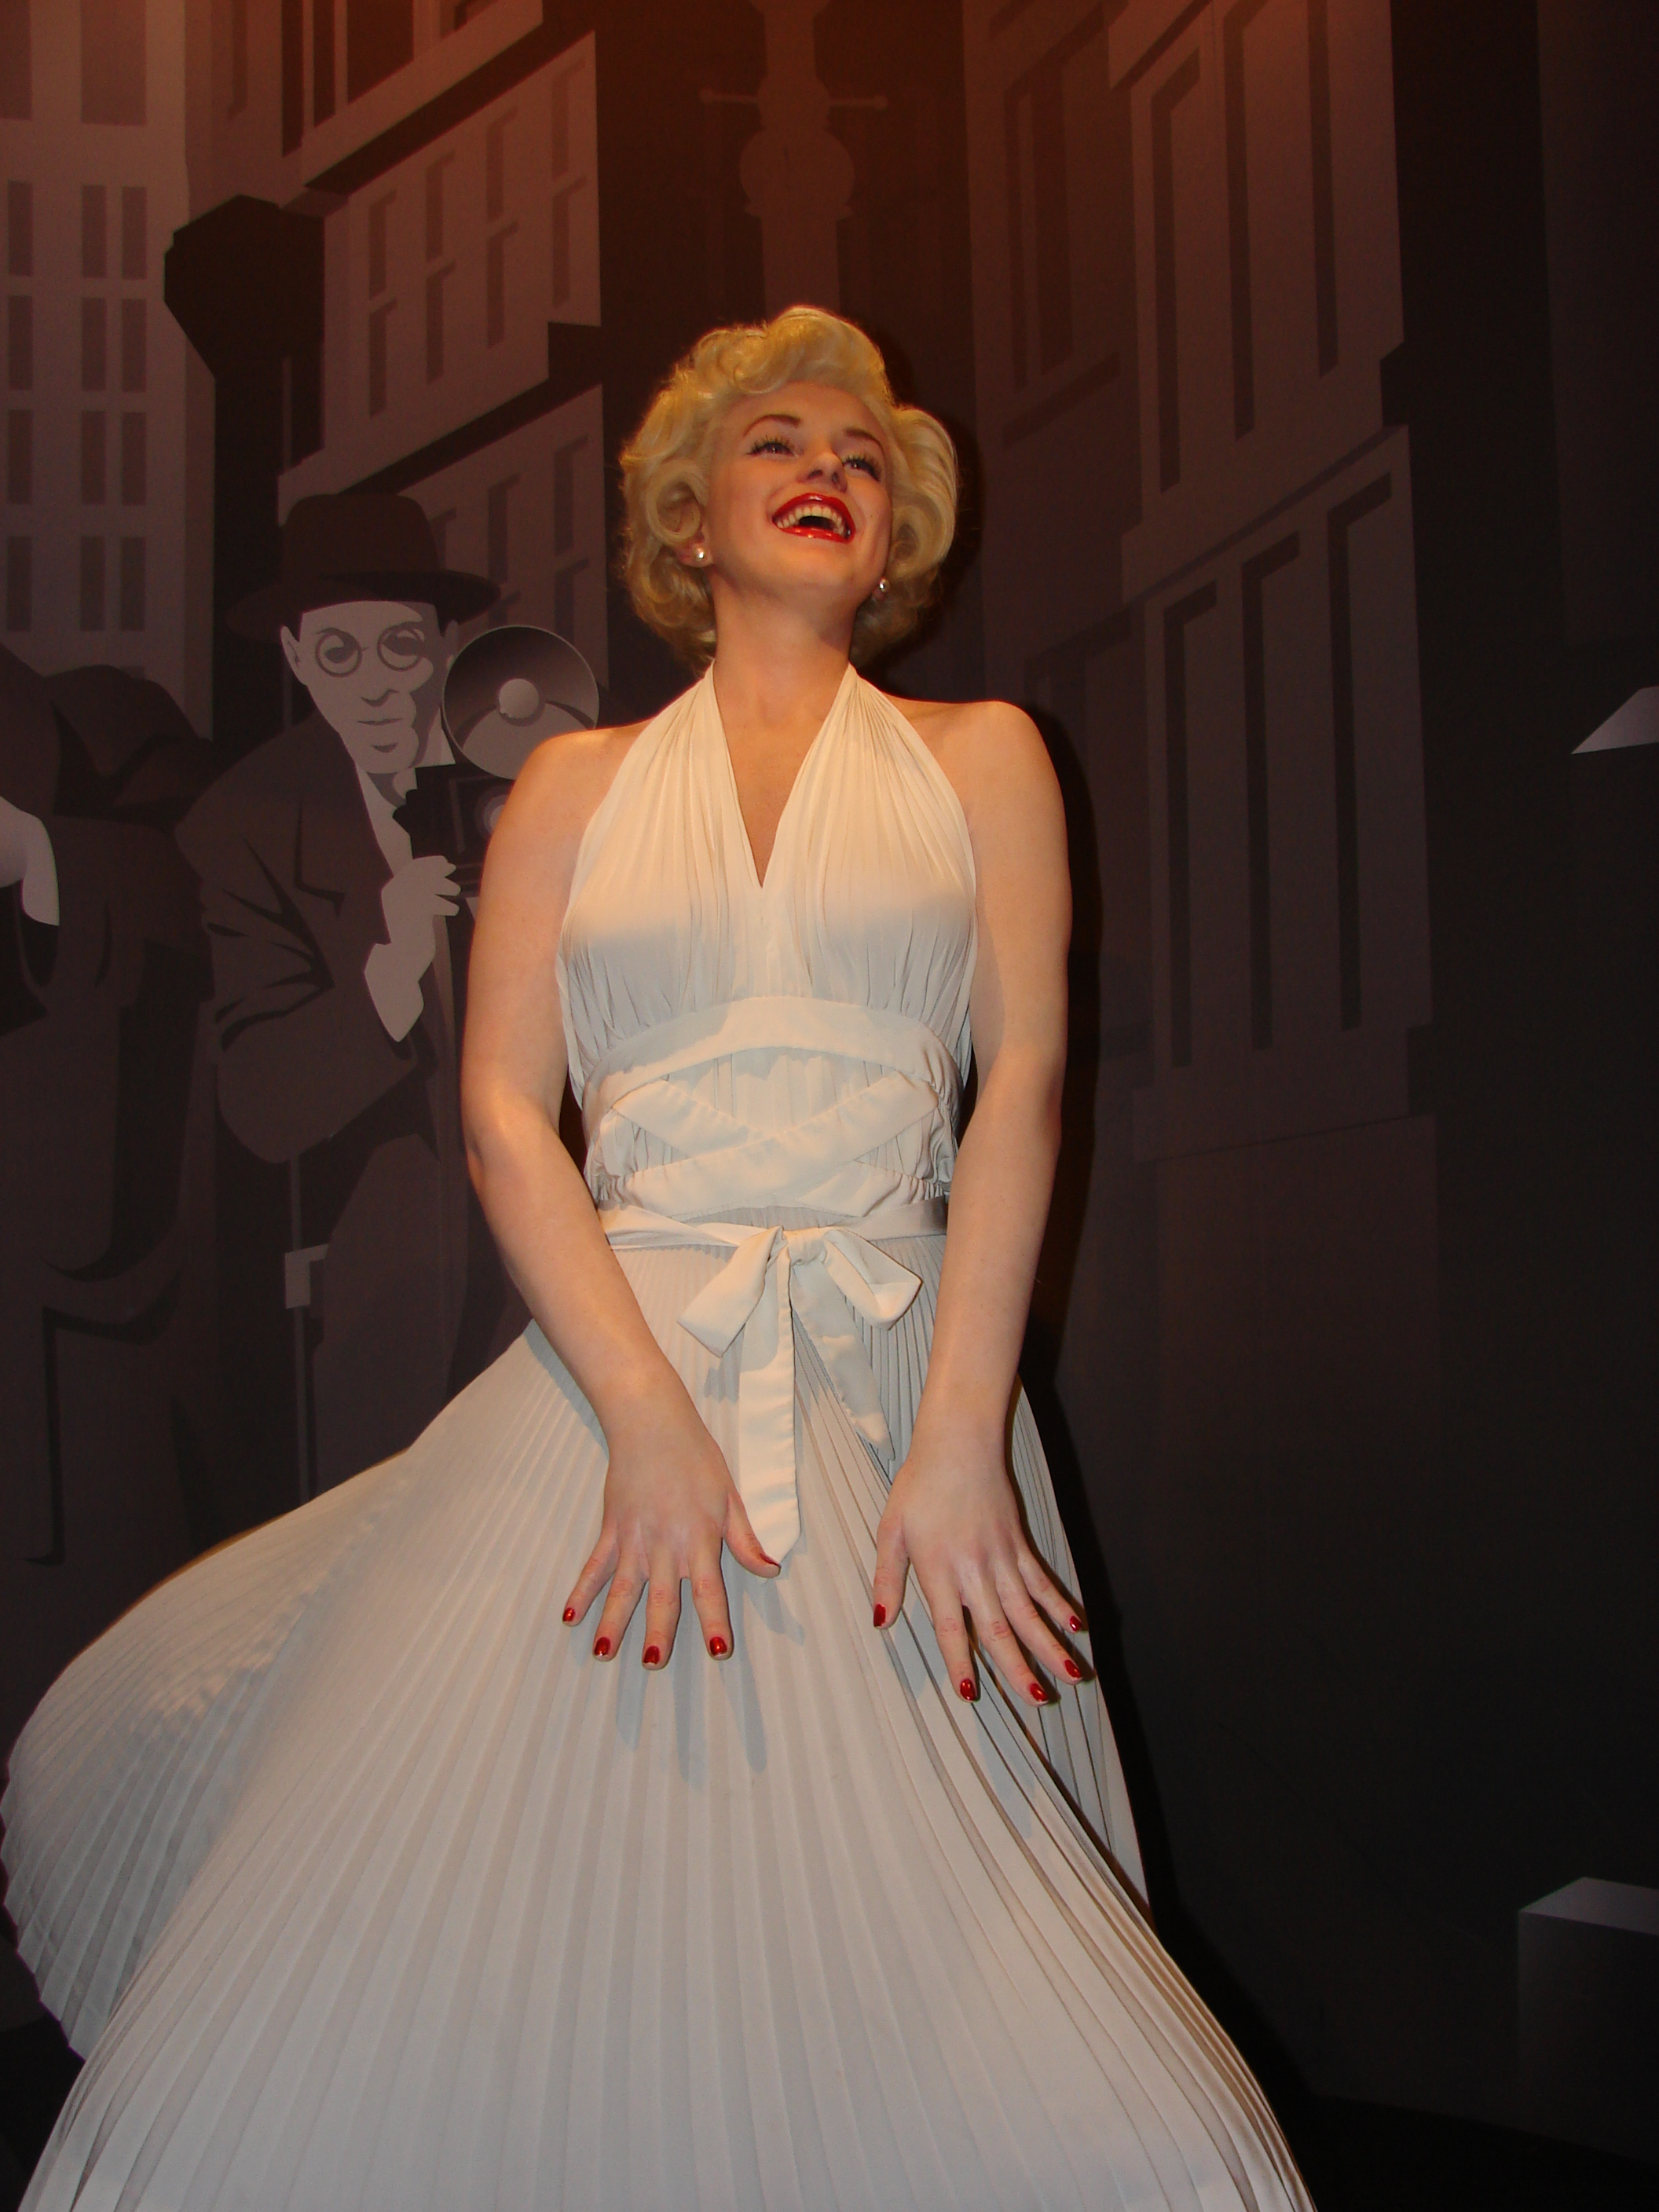 b3734dfdc File:Marilyn Monroe Wax Statue in Madame Tussauds London.jpg ...